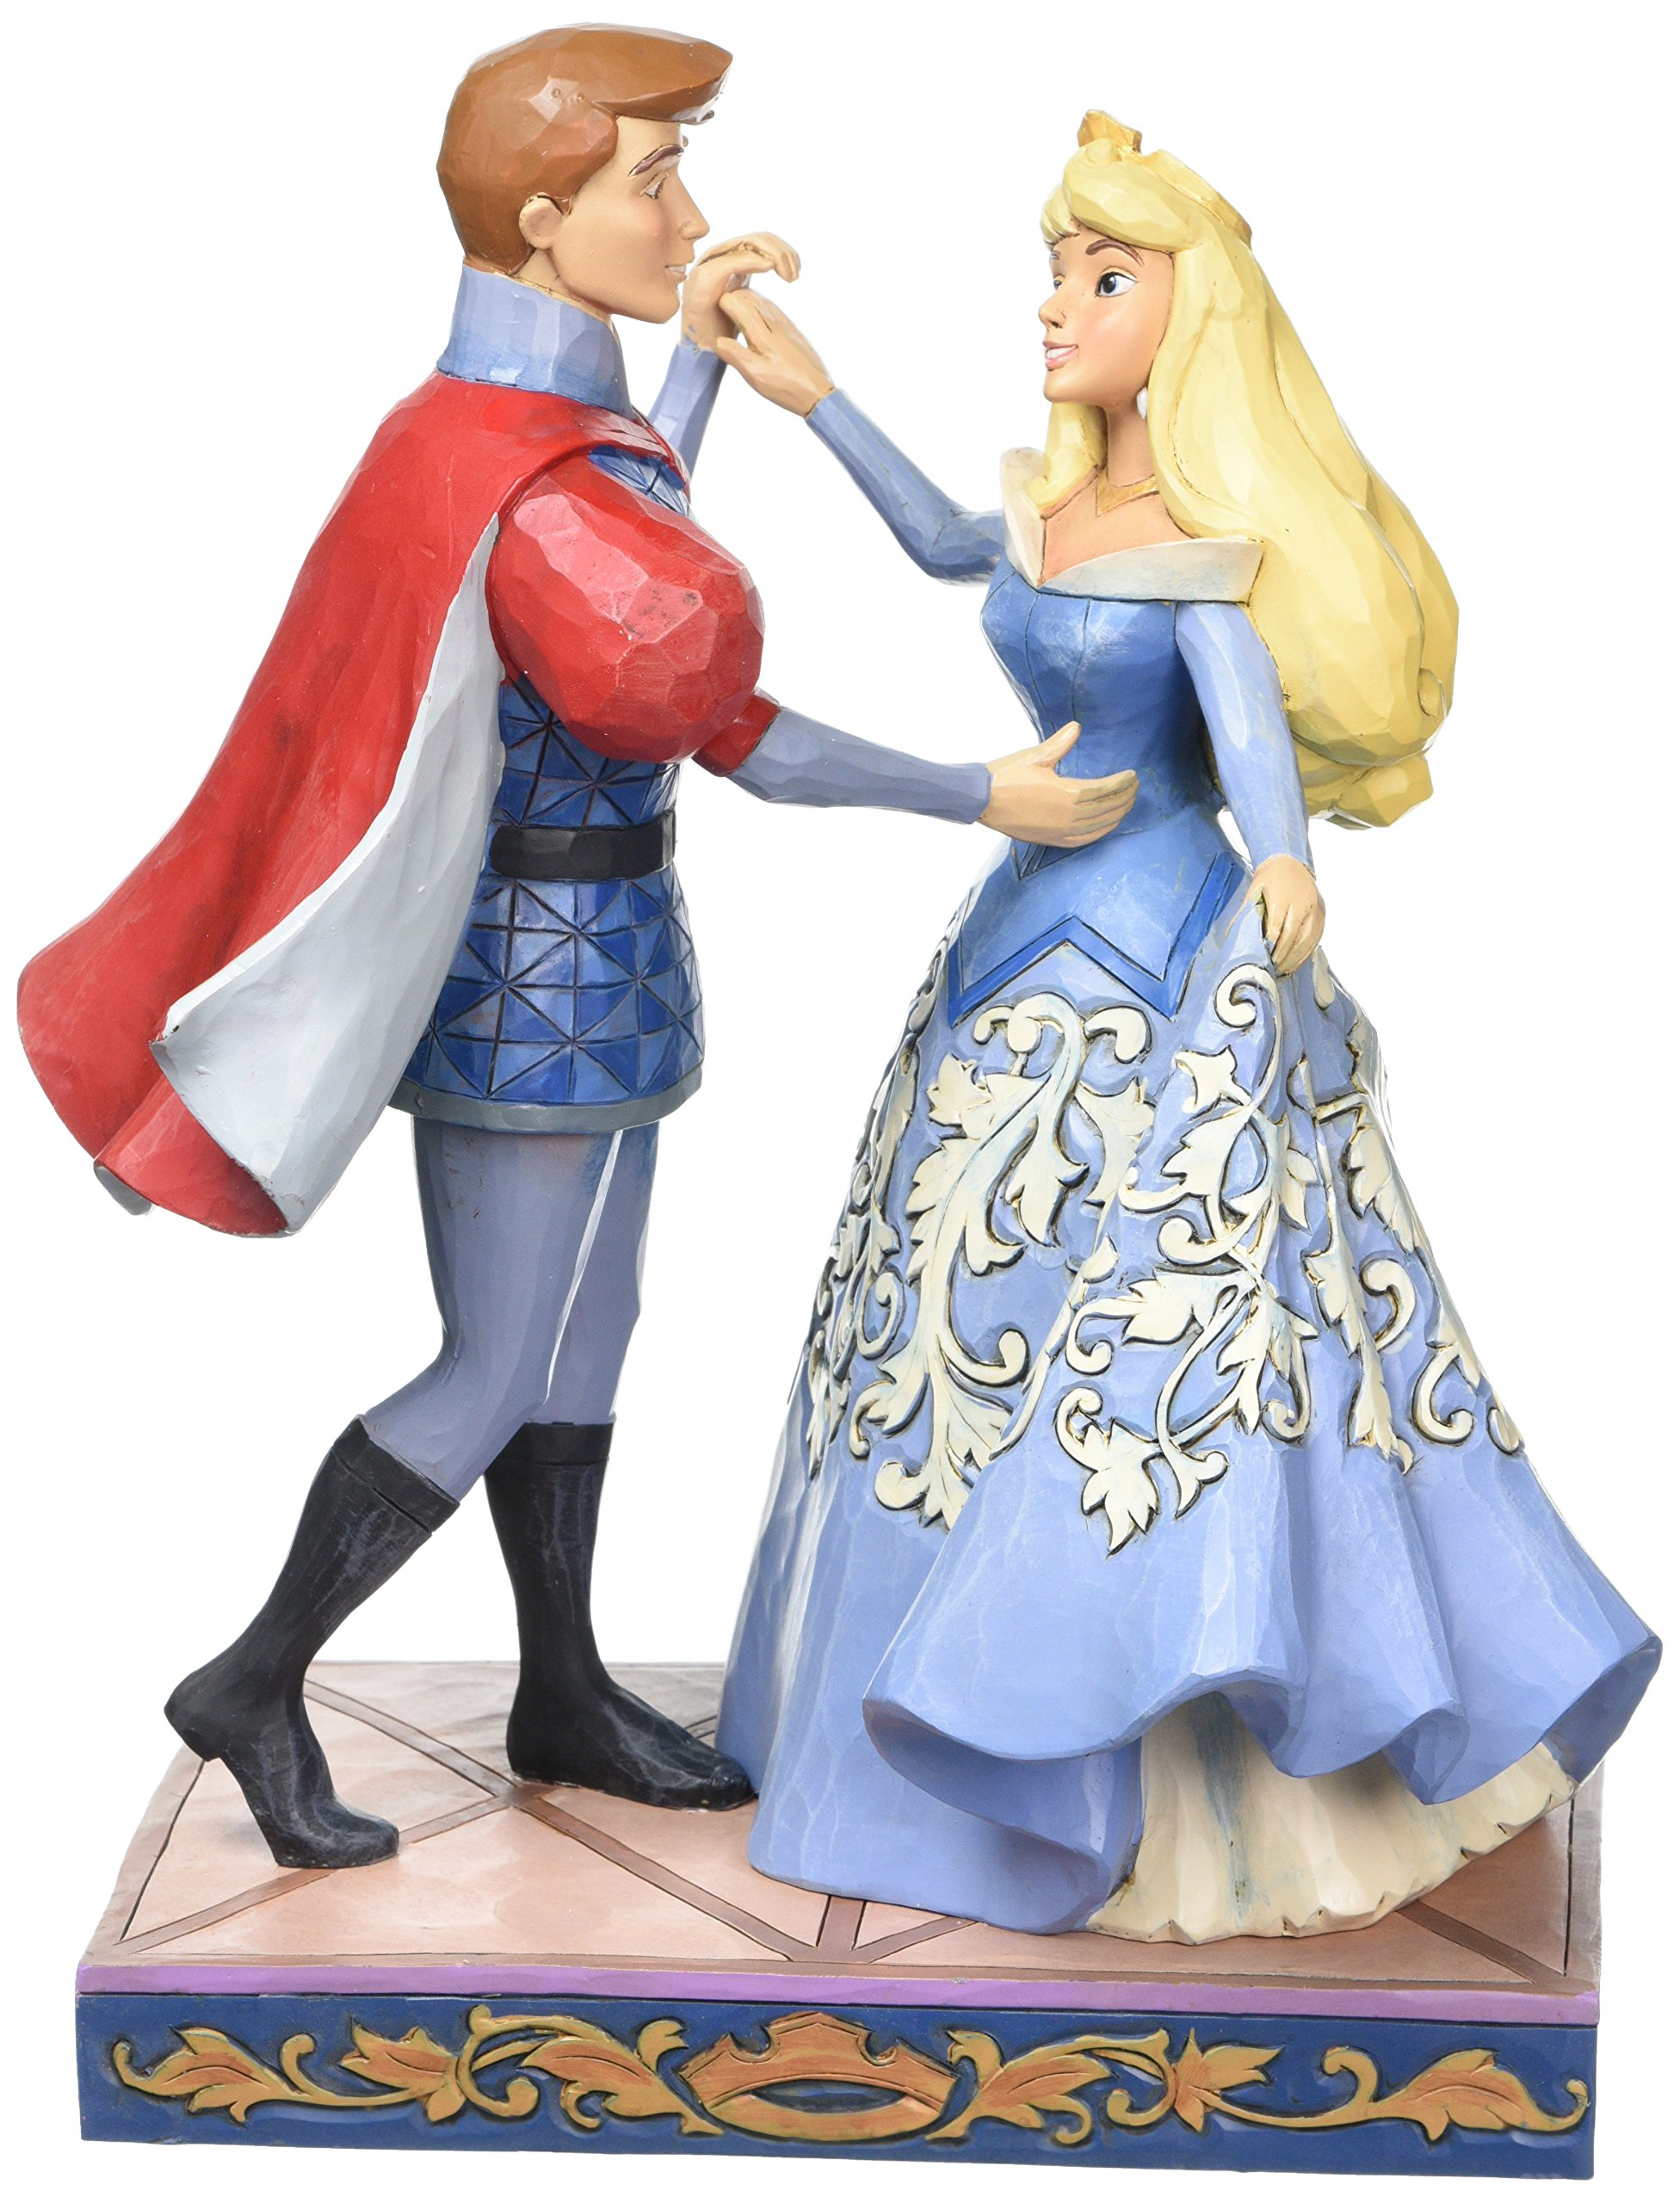 Disney Traditions Swept Up in The Moment Aurora and Prince Figurine, Resin, Multi-Colour, 115 x 165 x 230 cm